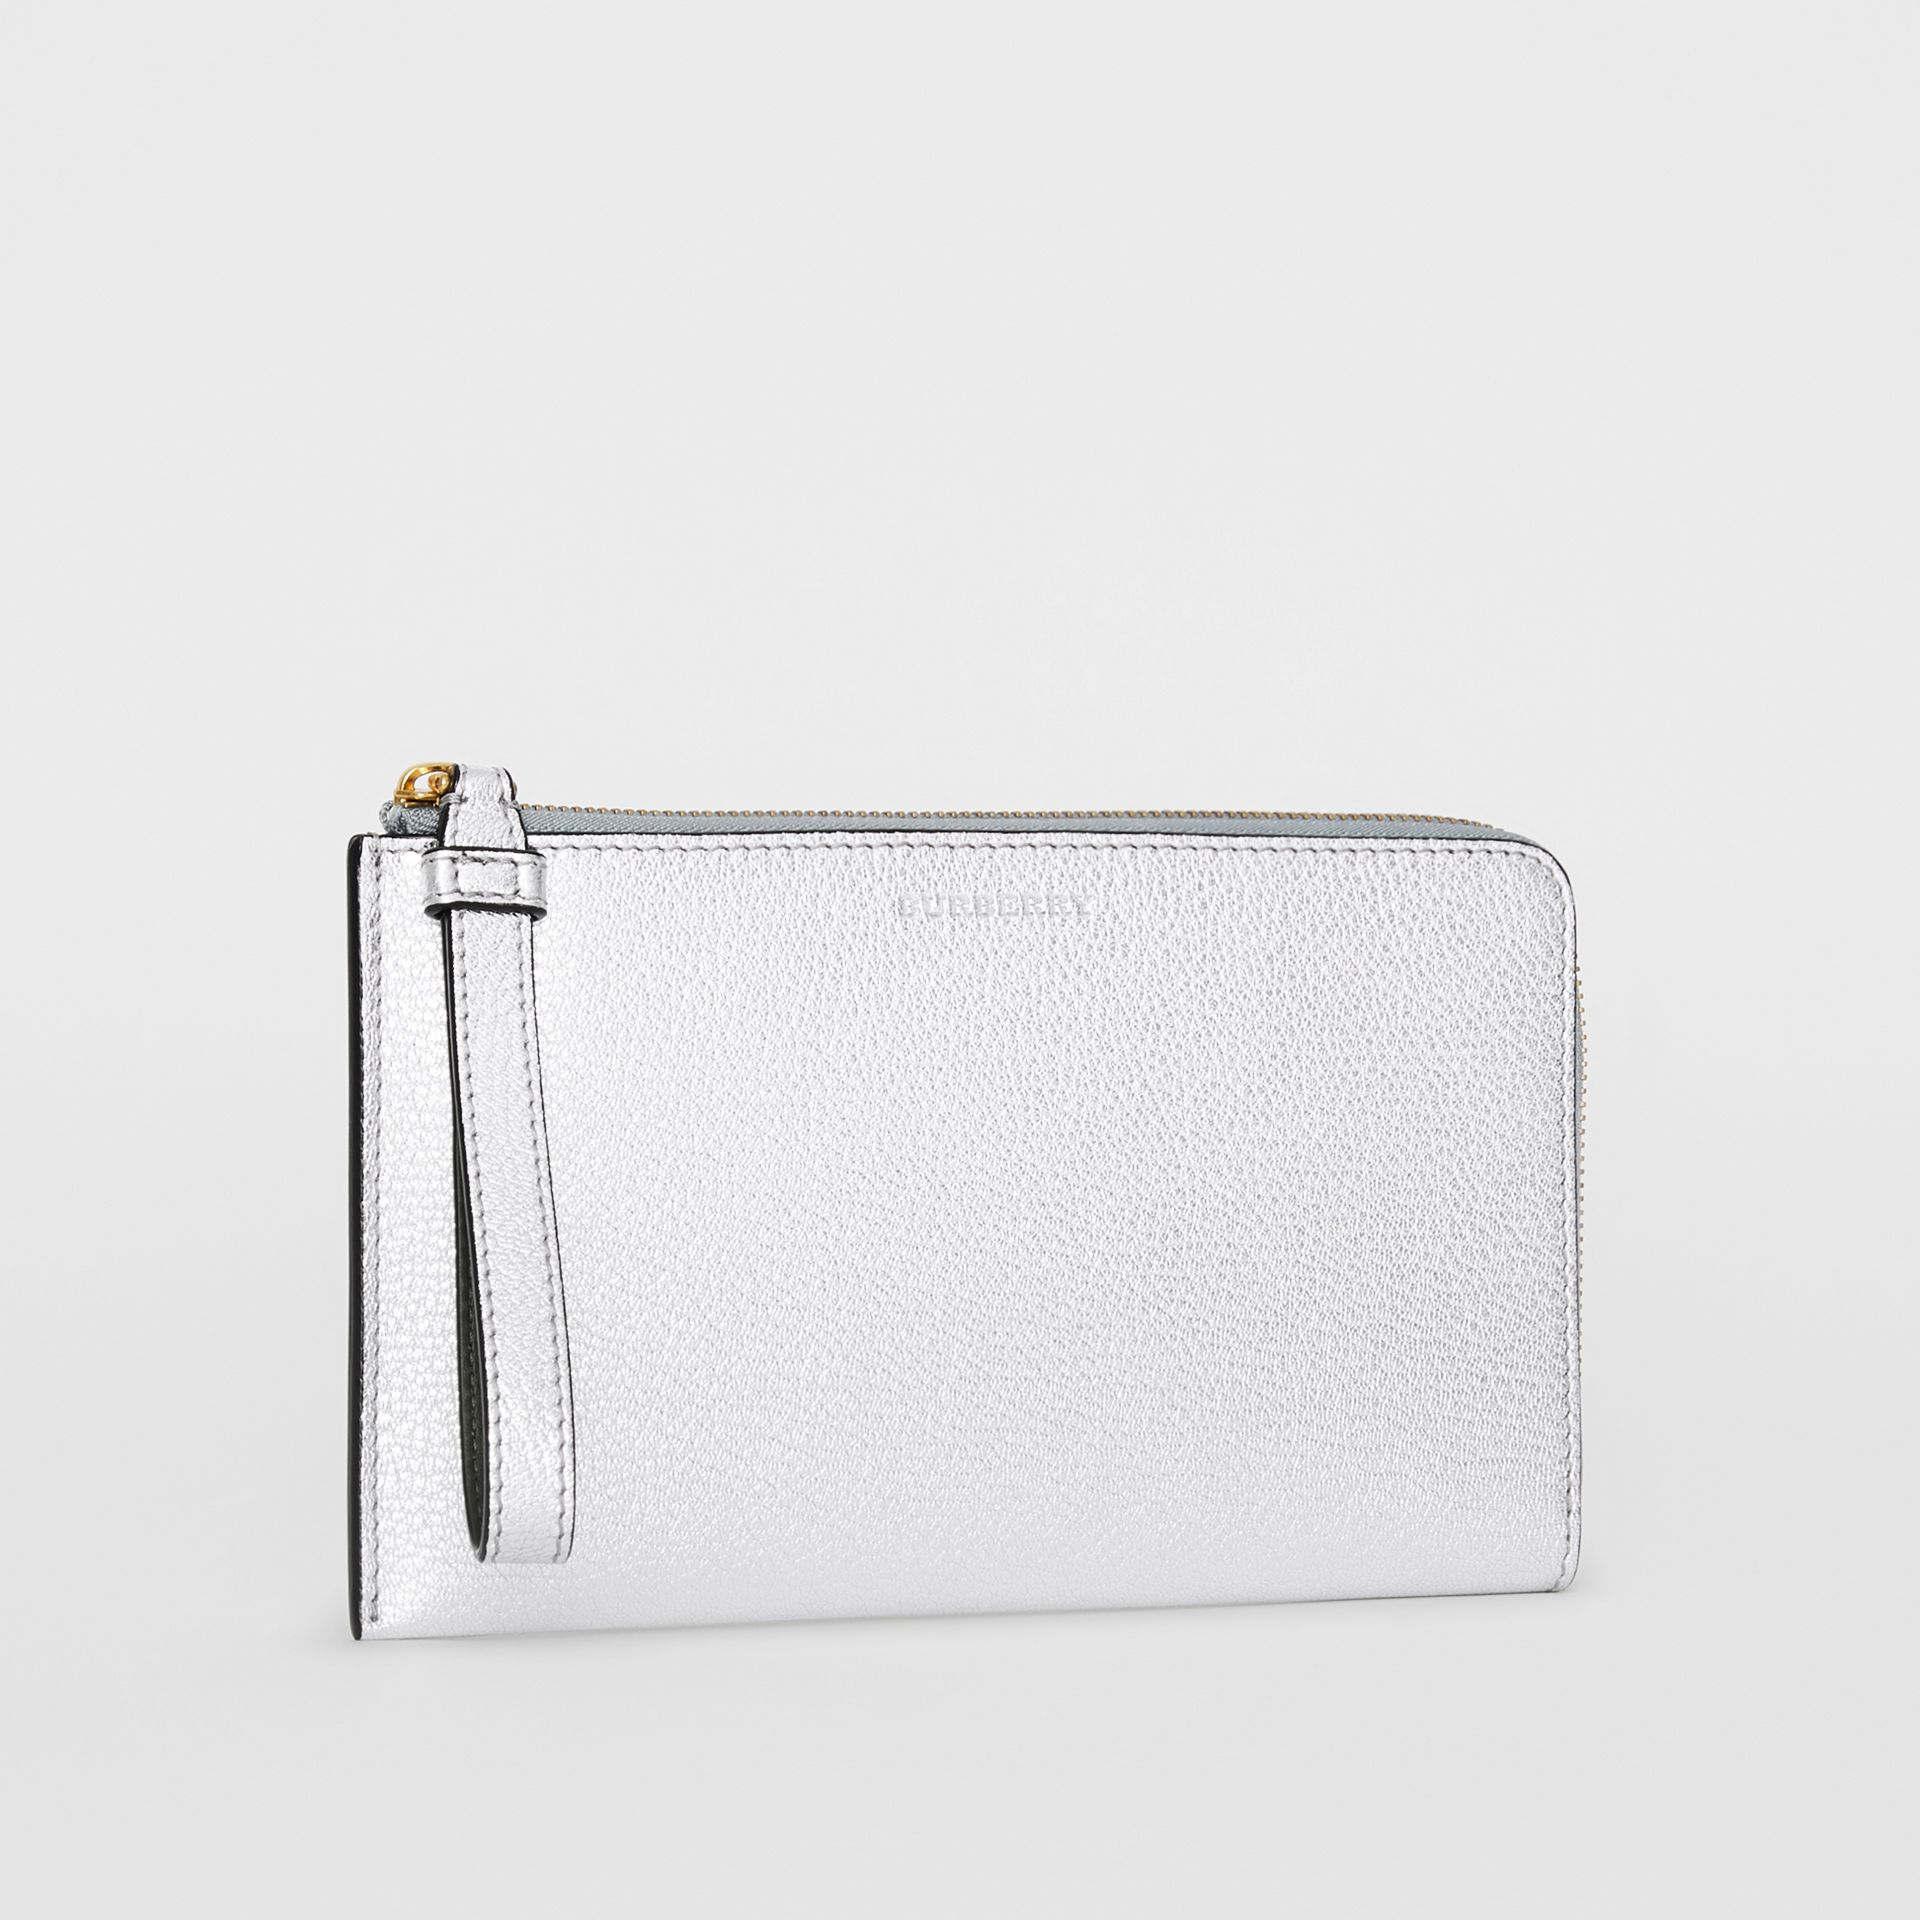 Two-tone Metallic Leather Travel Wallet in Silver - Women | Burberry Australia - gallery image 7